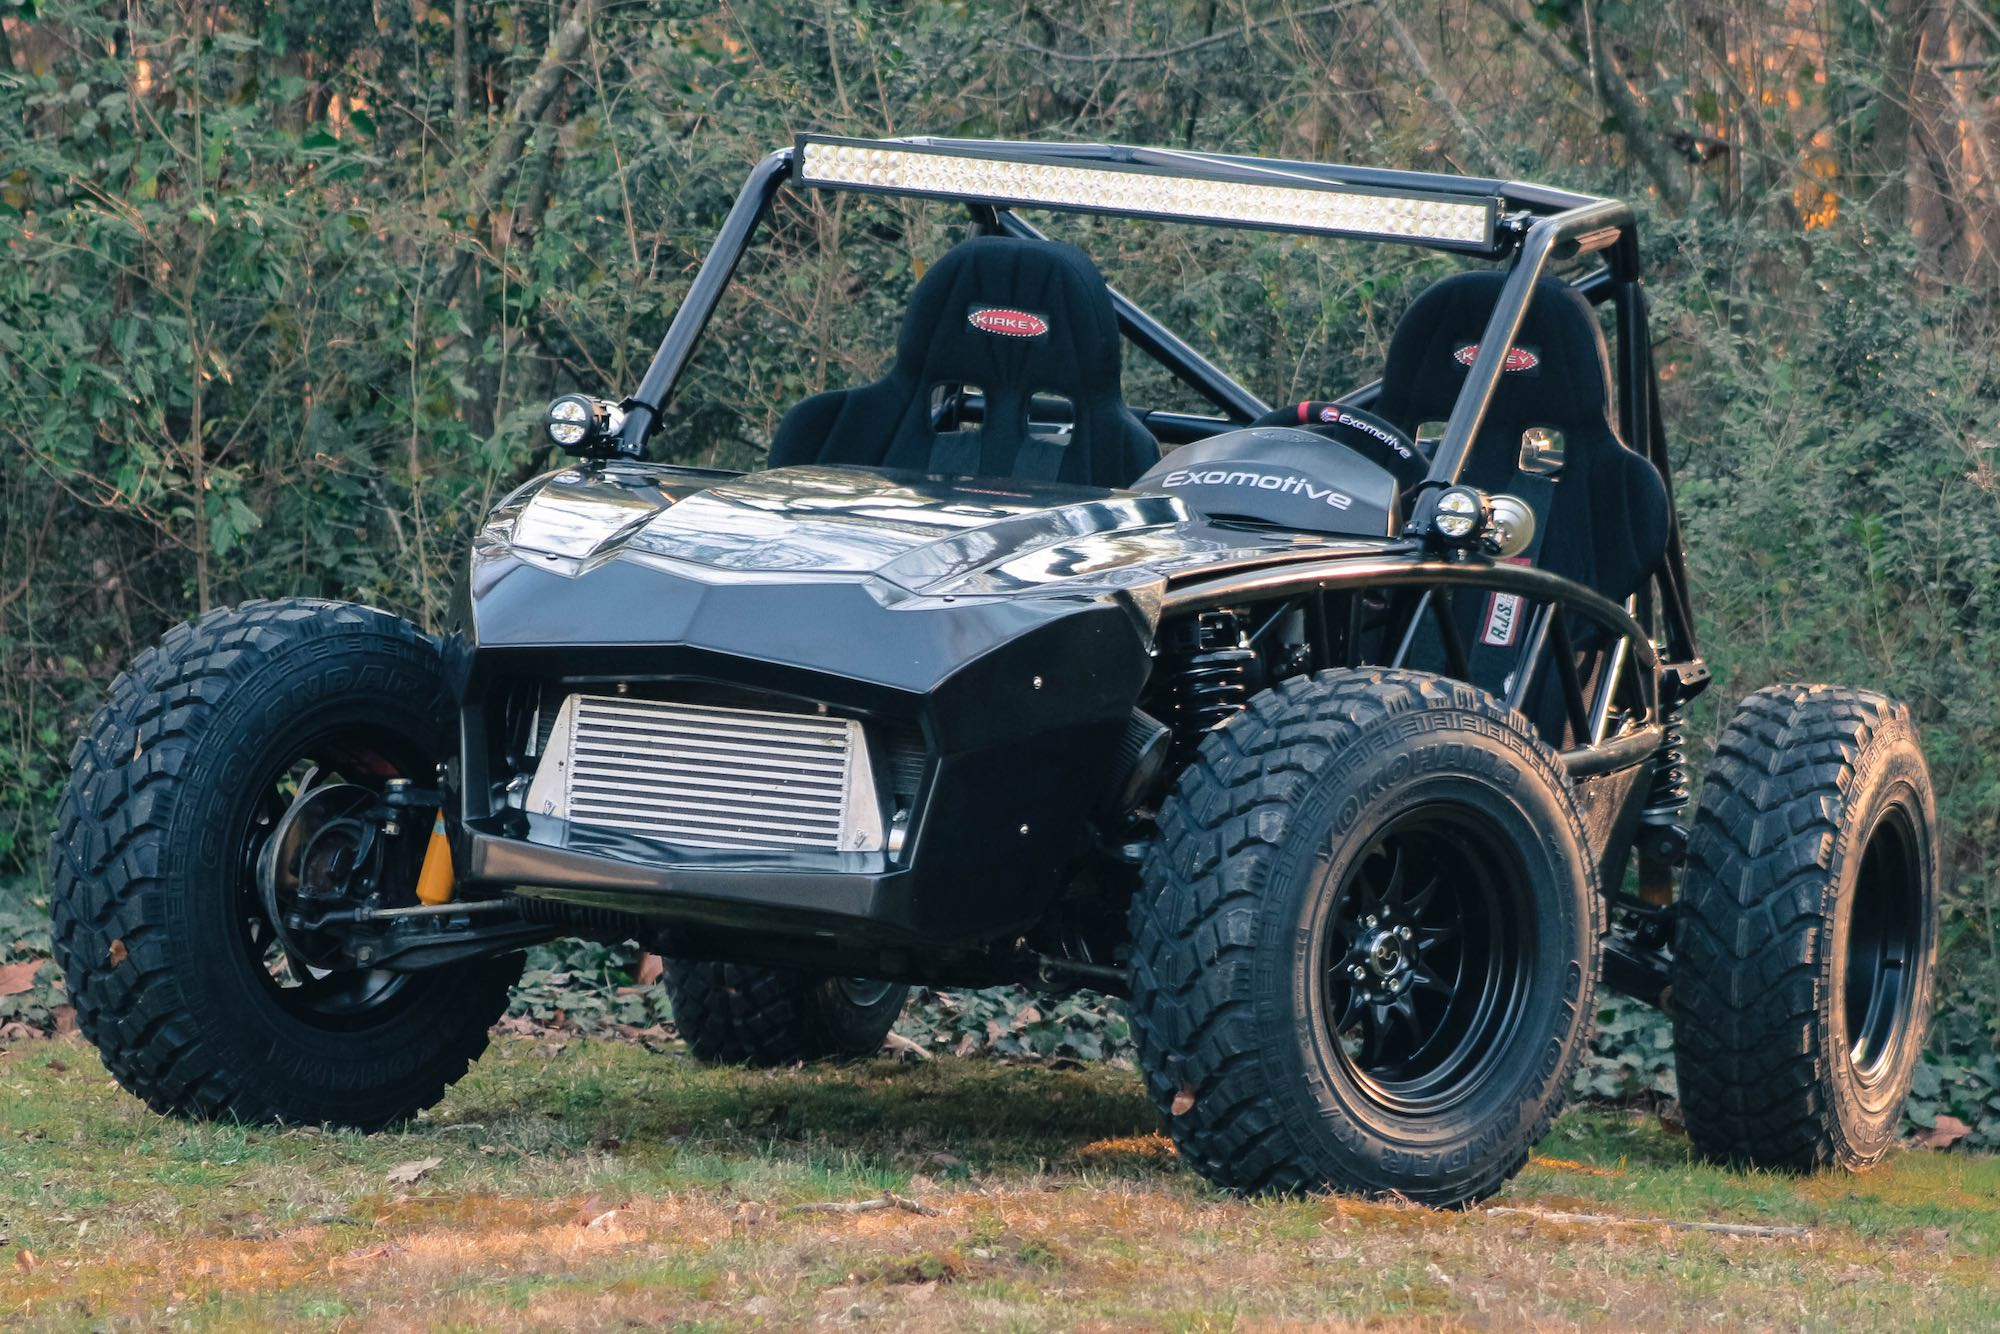 Exomotive - US Manufacturer of Exocars & Kit Cars | Exocet Off-Road